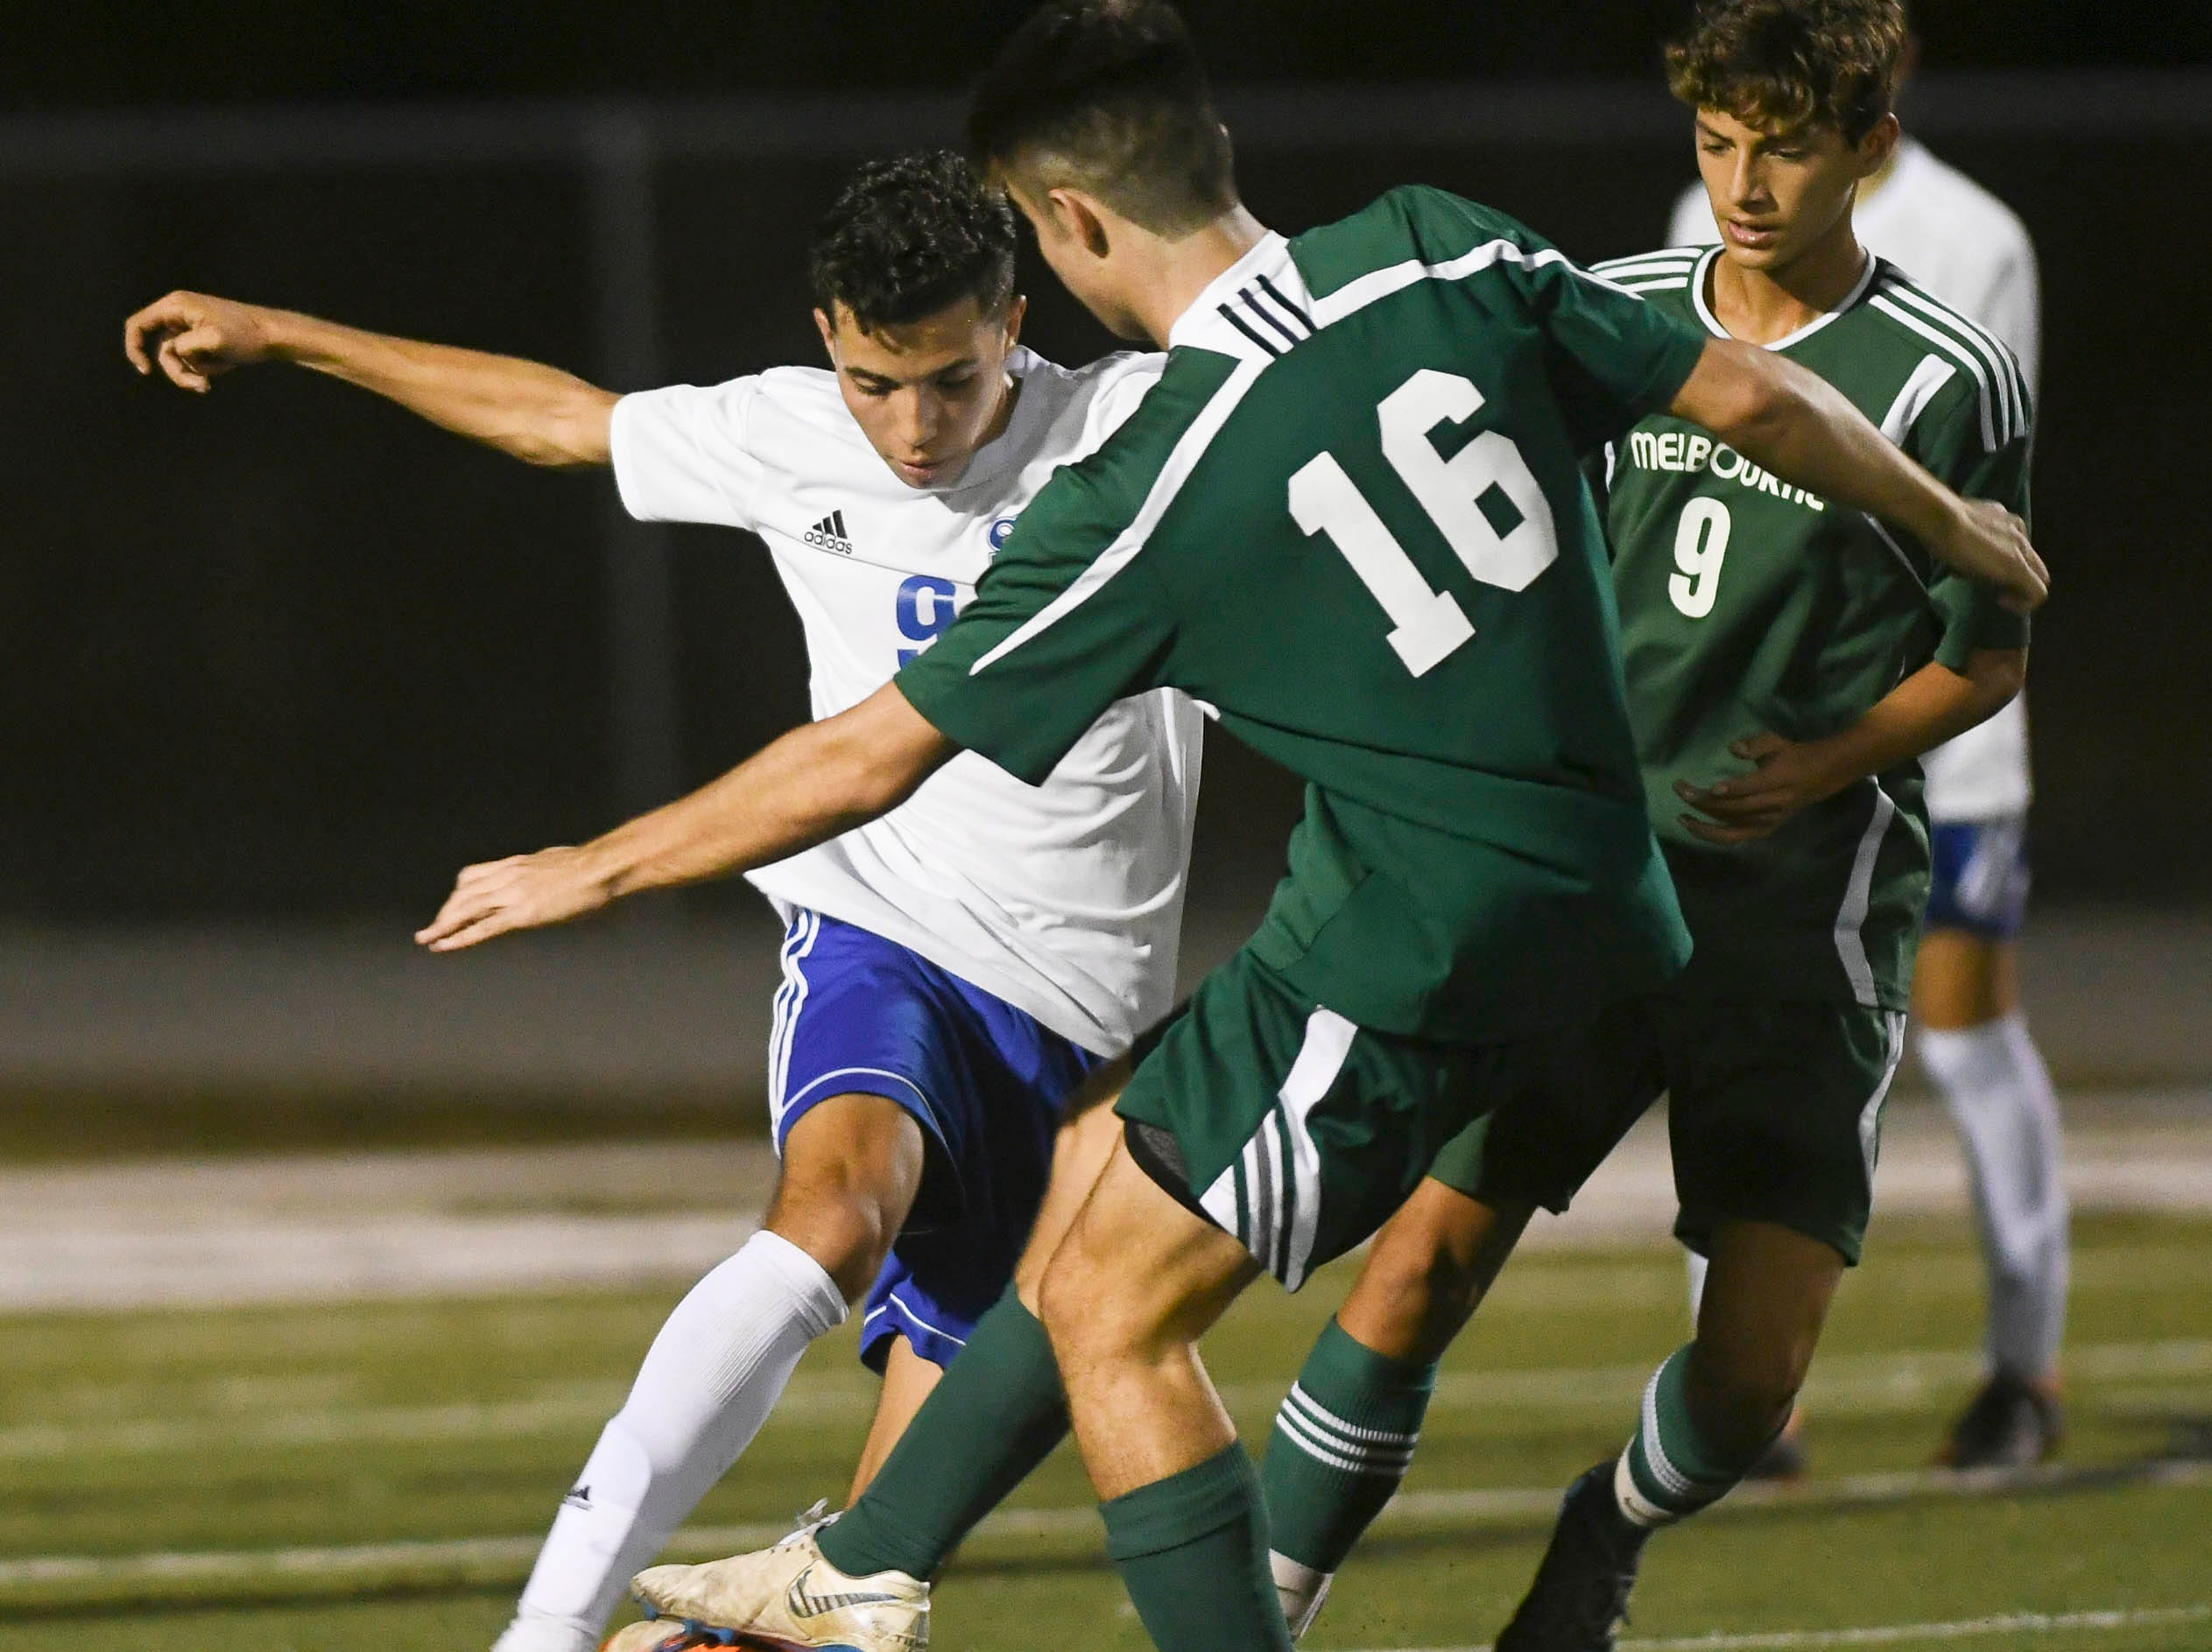 Miguel Perez of Sebastian River tries to push through the defense of Calvin MacDonald (16) and Osas Osaro of Melbourne during Friday's game in Melbourne.